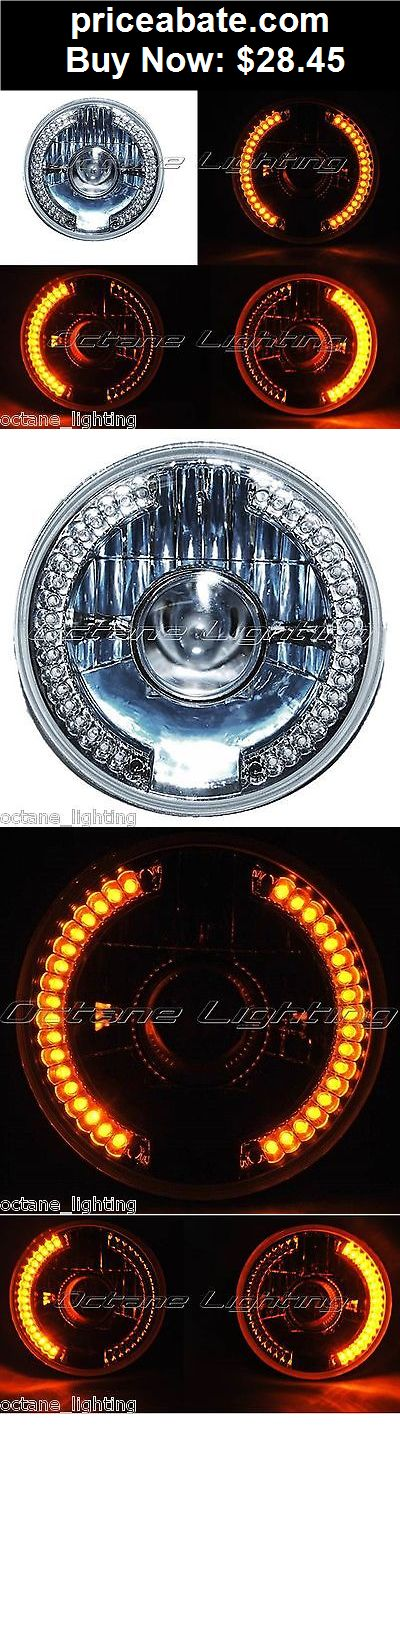 """Motors-Parts-And-Accessories: 7"""" Amber LED Projector Halogen Motorcycle Halo Blinker Turn Signal Headlight - BUY IT NOW ONLY $28.45"""